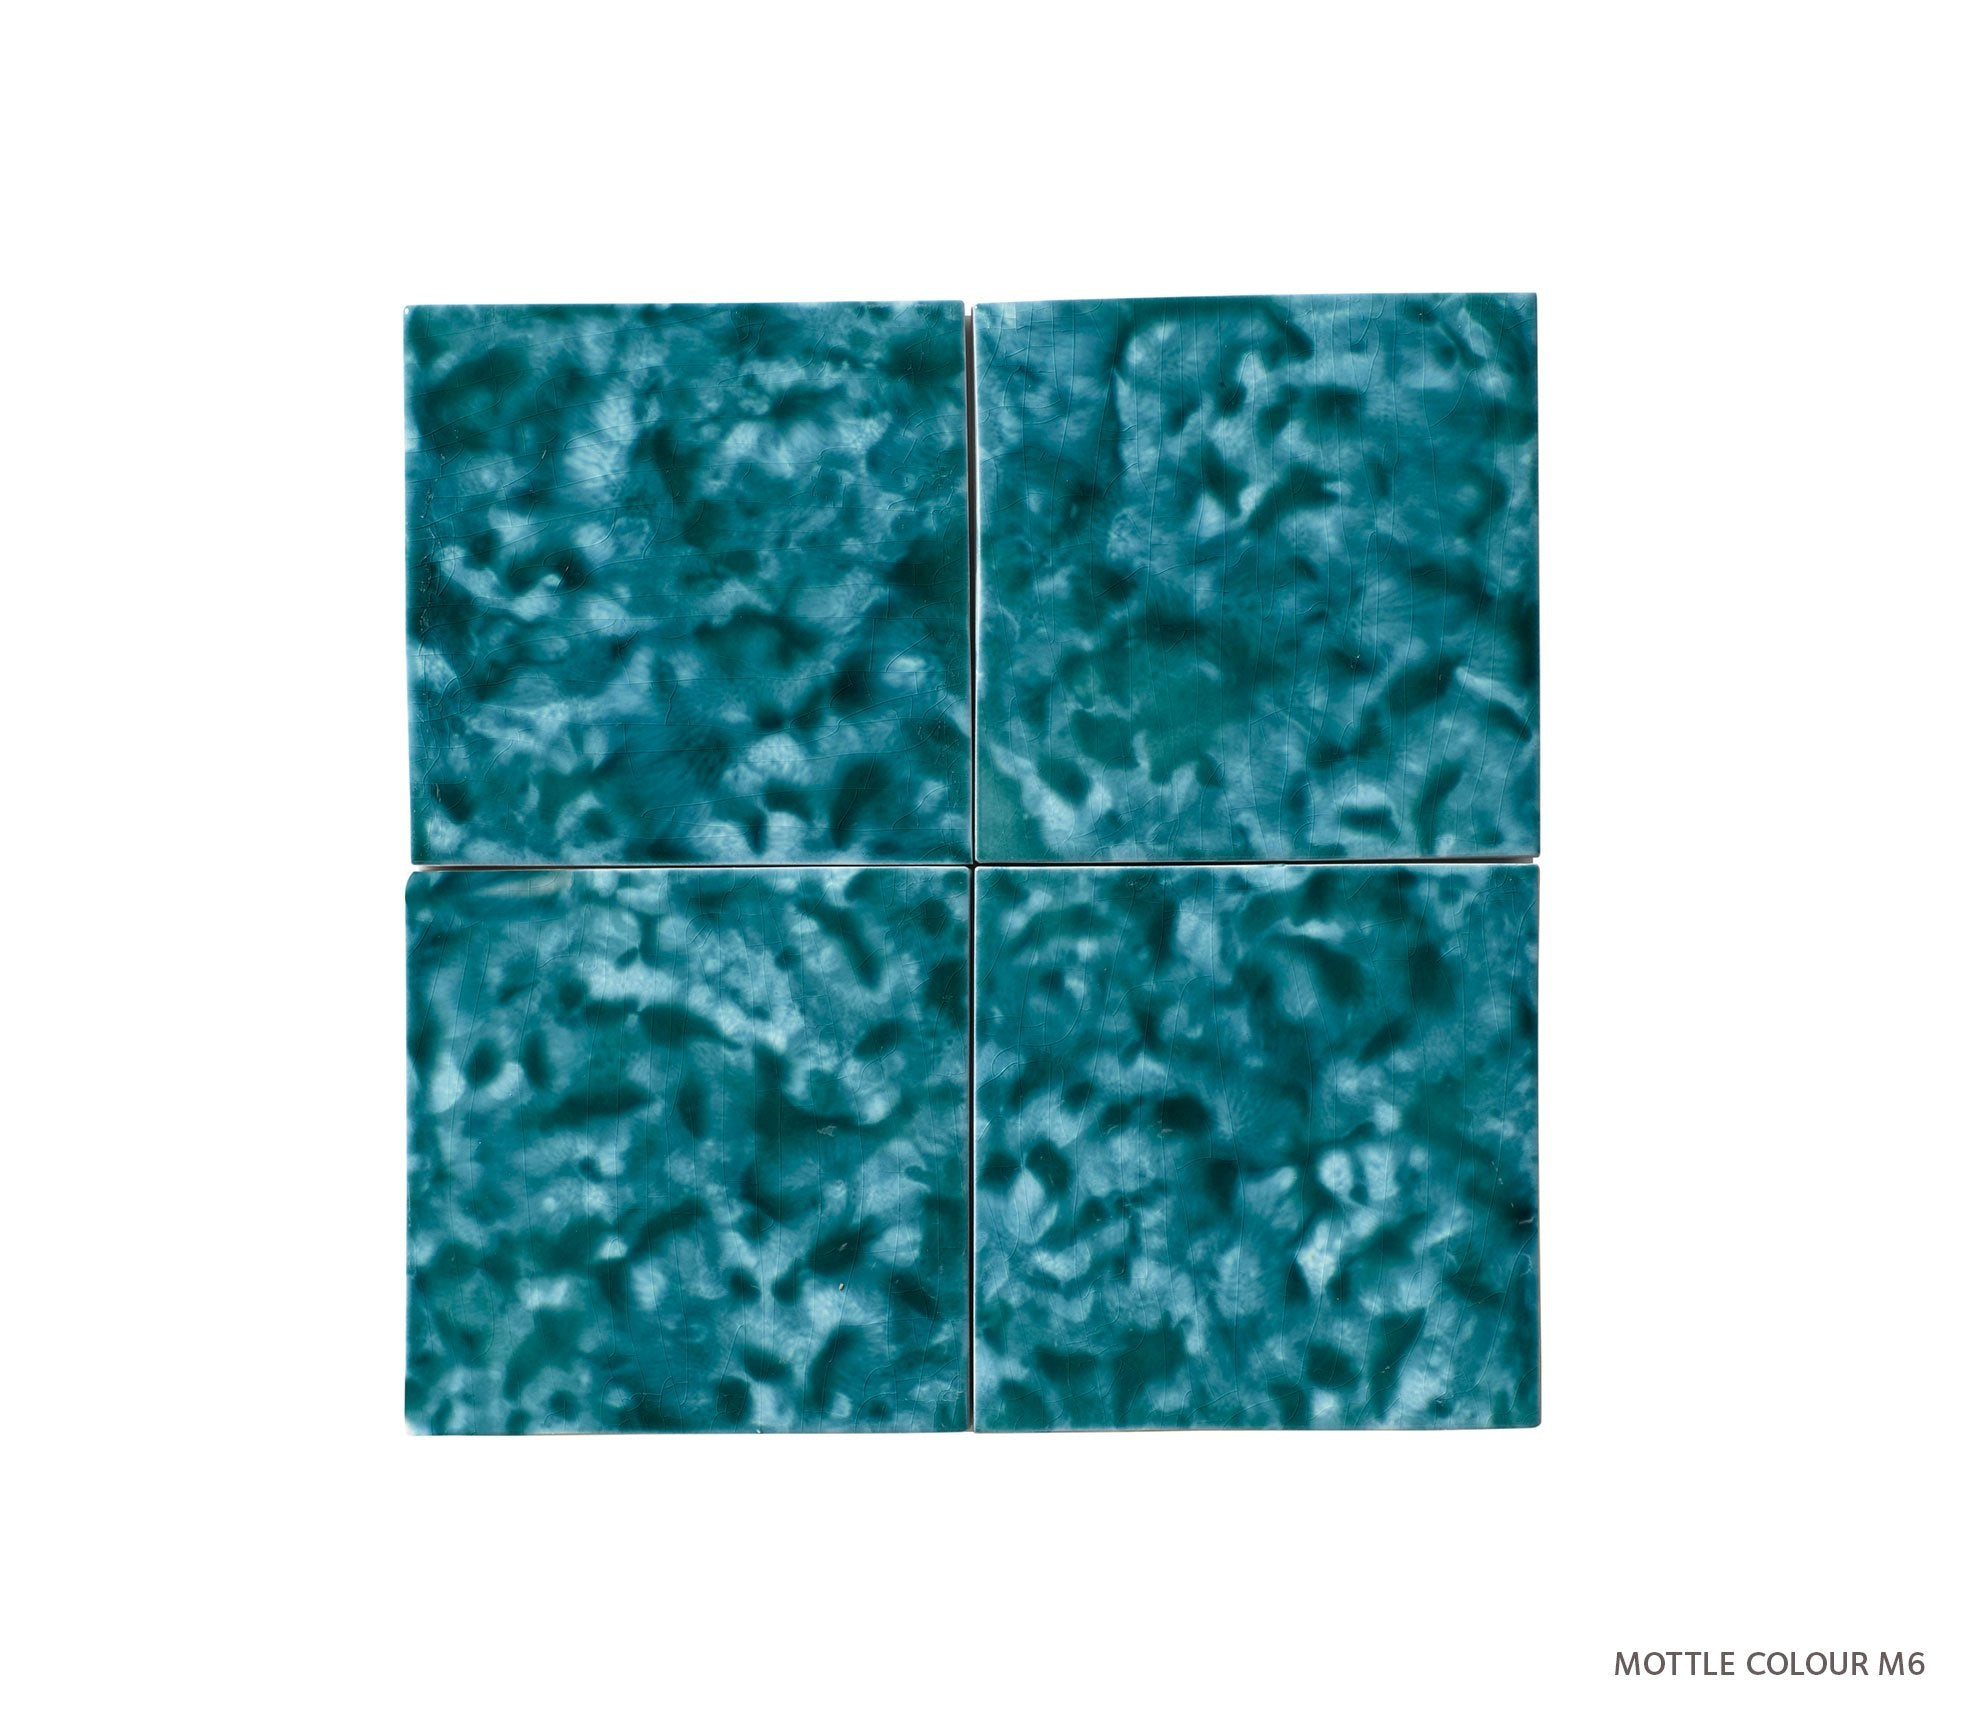 Mottled Tiles Product Image 16